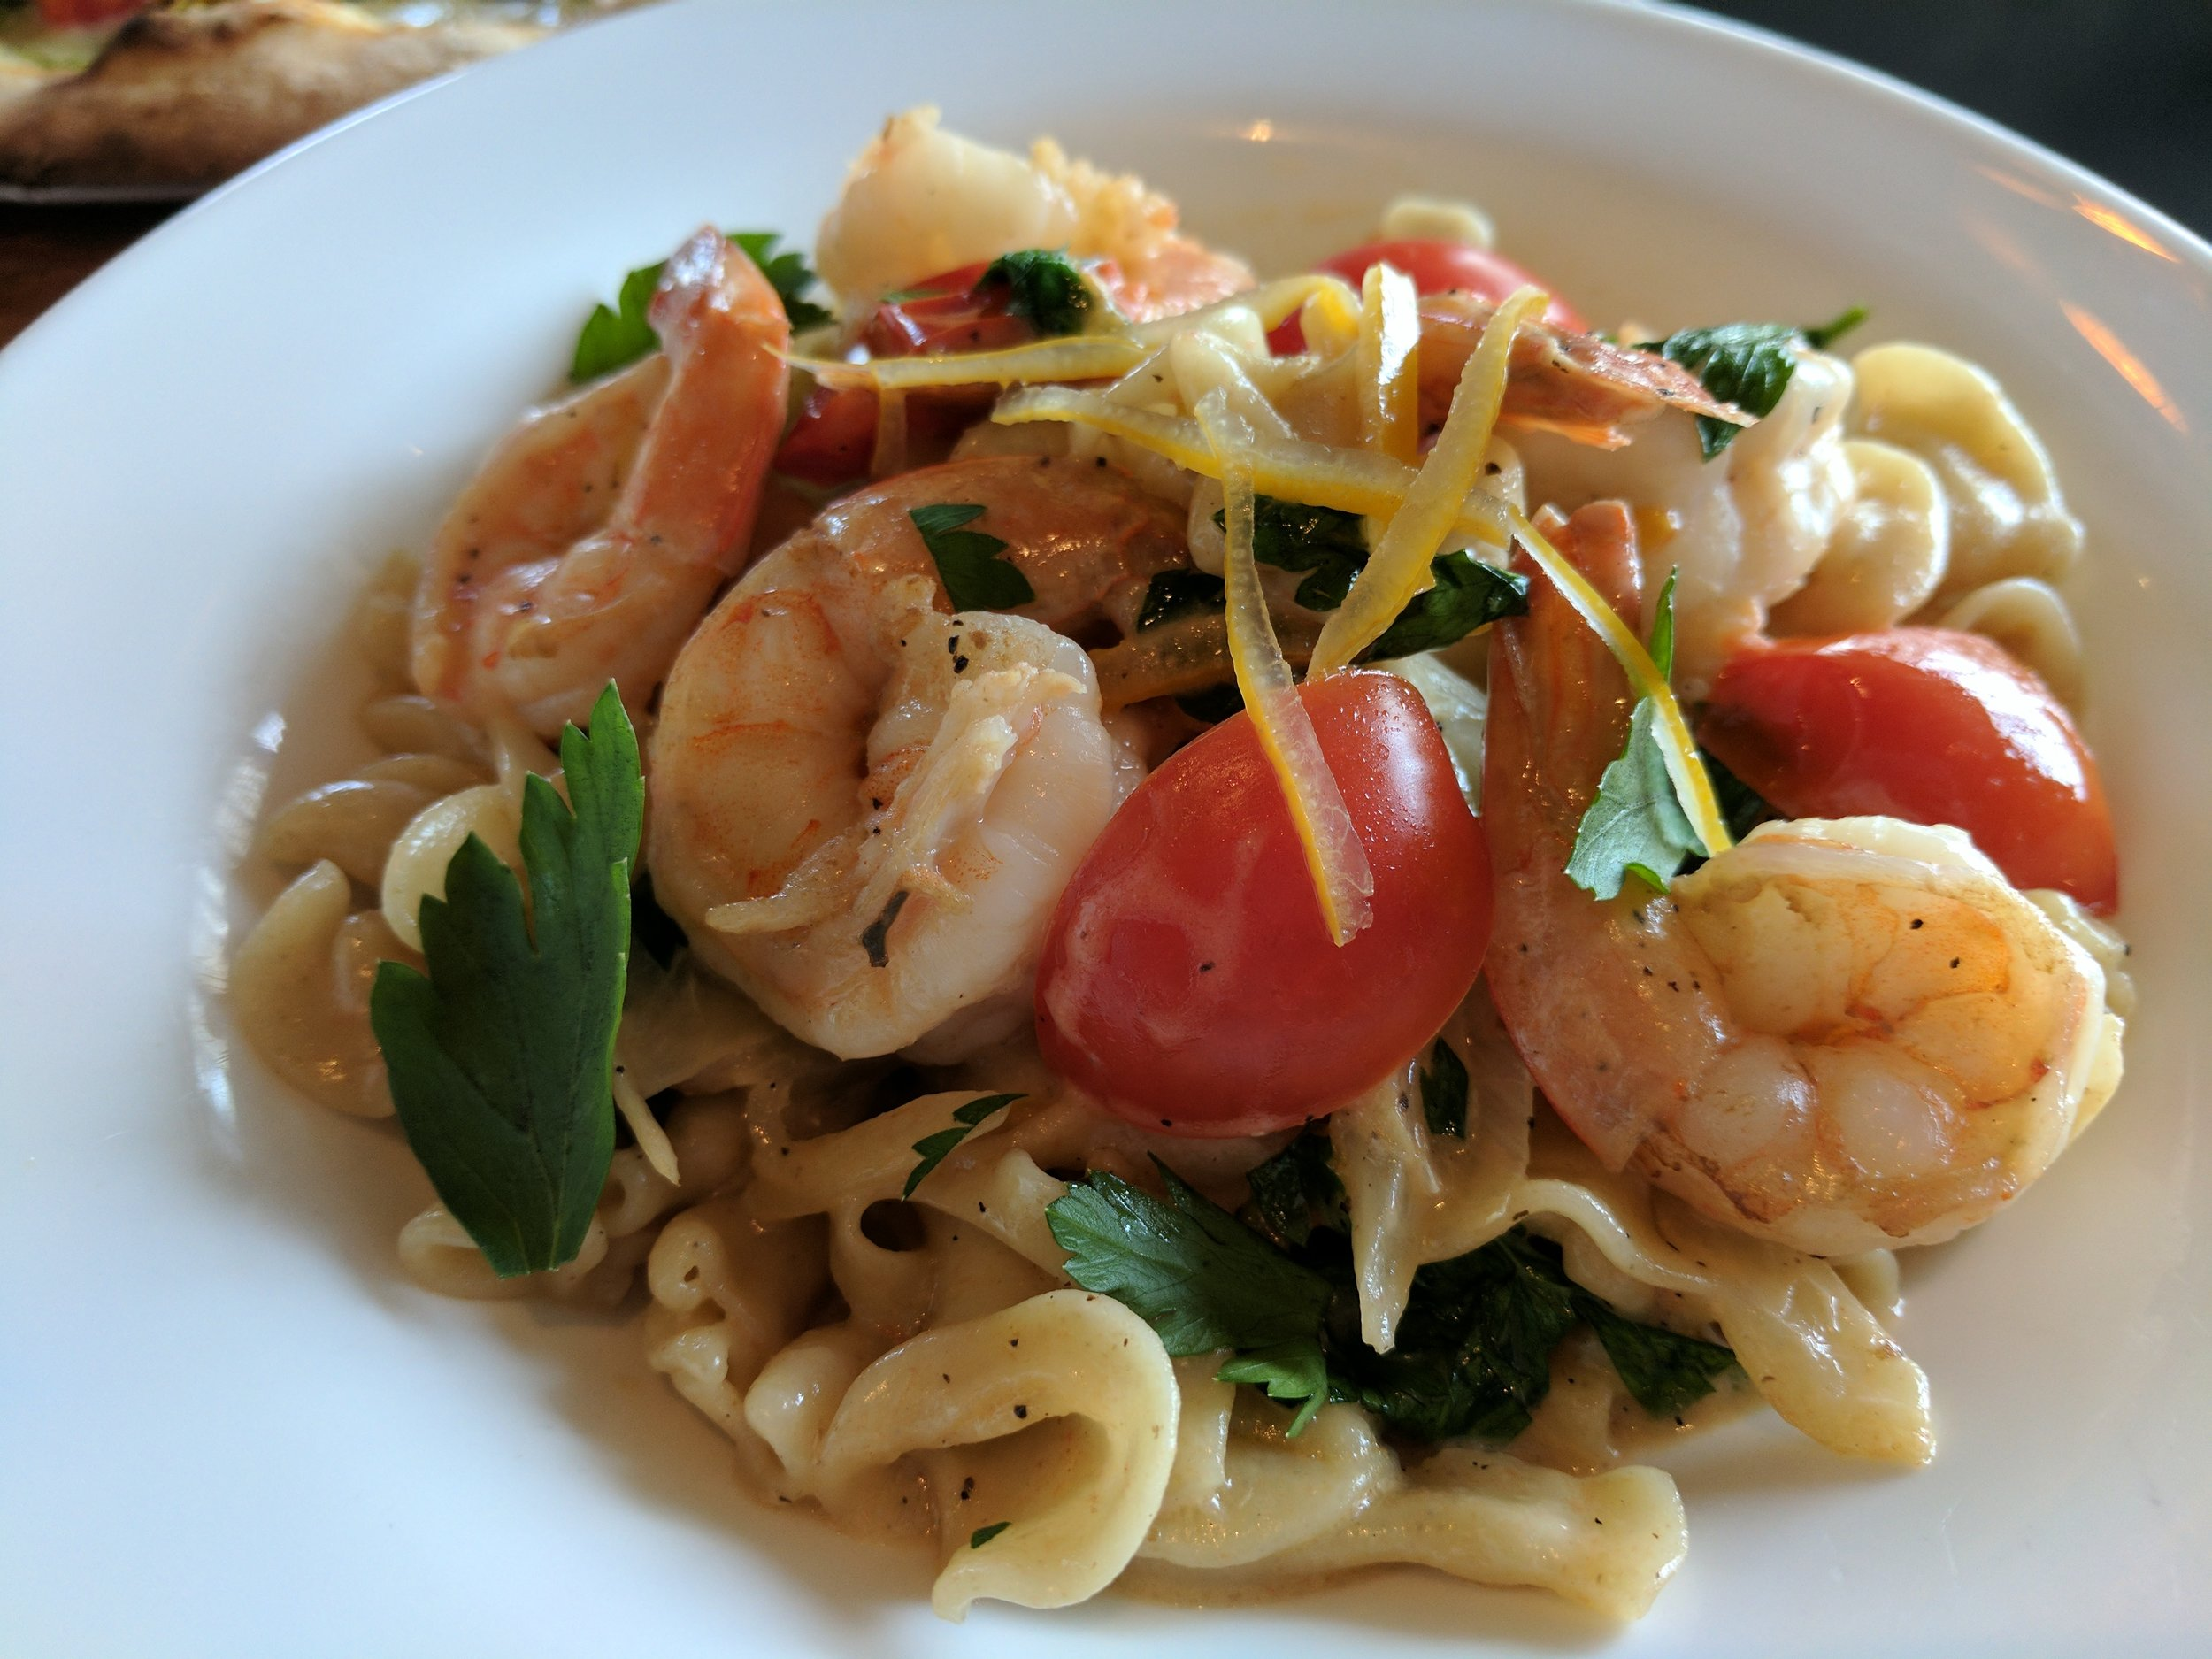 Braised fennel with campanelle pasta, shrimp, cherry tomatoes and preserved lemon.